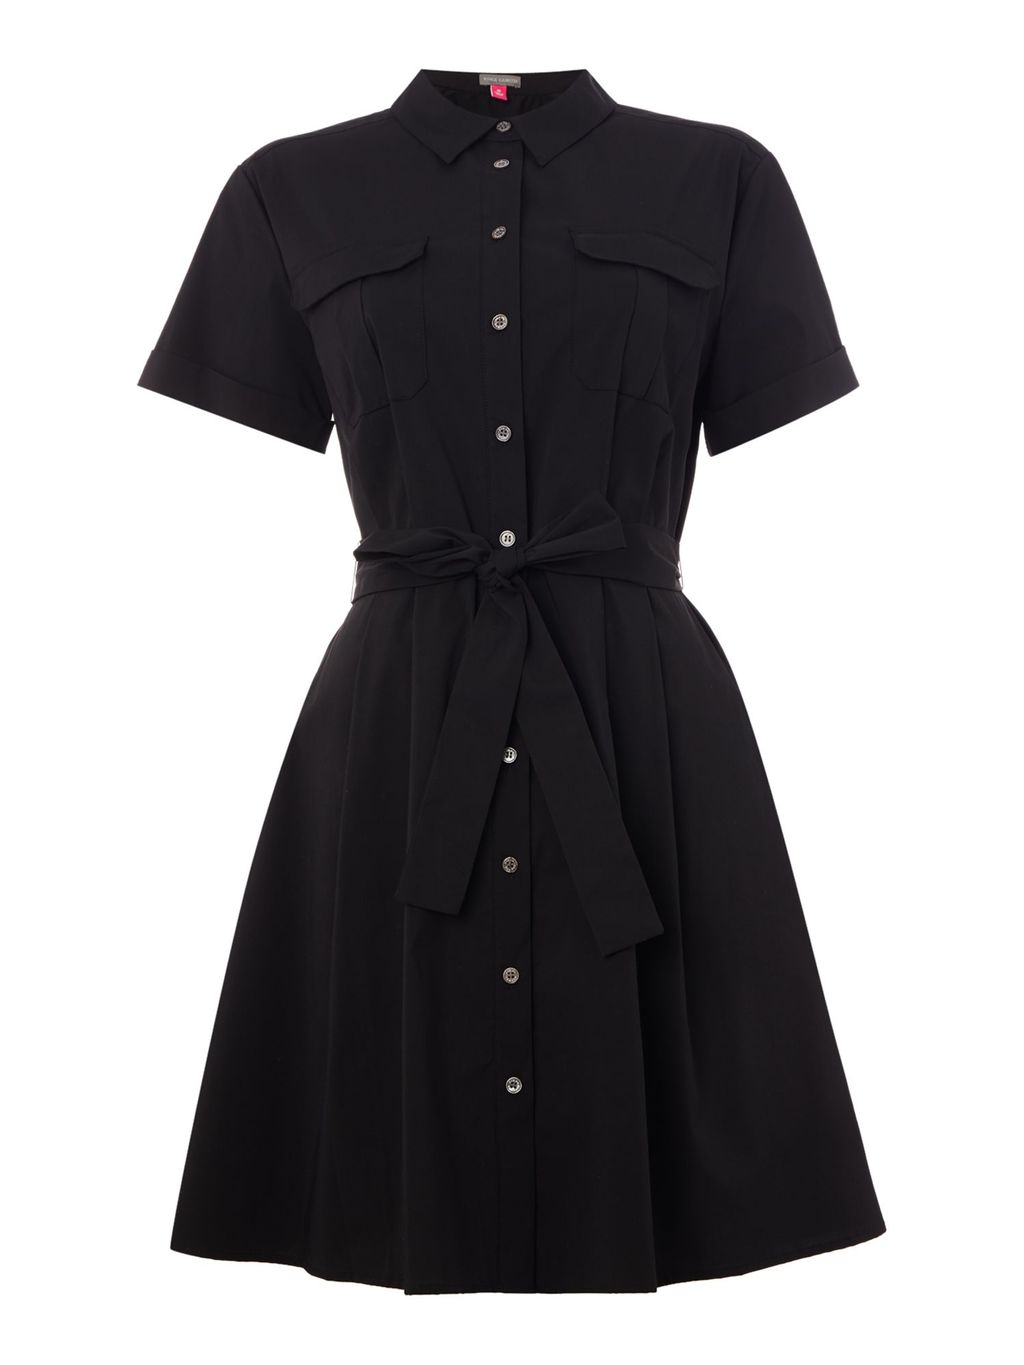 Short Sleeve Belted Shirt Dress, Black - style: shirt; neckline: shirt collar/peter pan/zip with opening; pattern: plain; predominant colour: black; occasions: casual, creative work; length: just above the knee; fit: fitted at waist & bust; fibres: cotton - stretch; sleeve length: short sleeve; sleeve style: standard; pattern type: fabric; texture group: woven light midweight; season: s/s 2016; wardrobe: basic